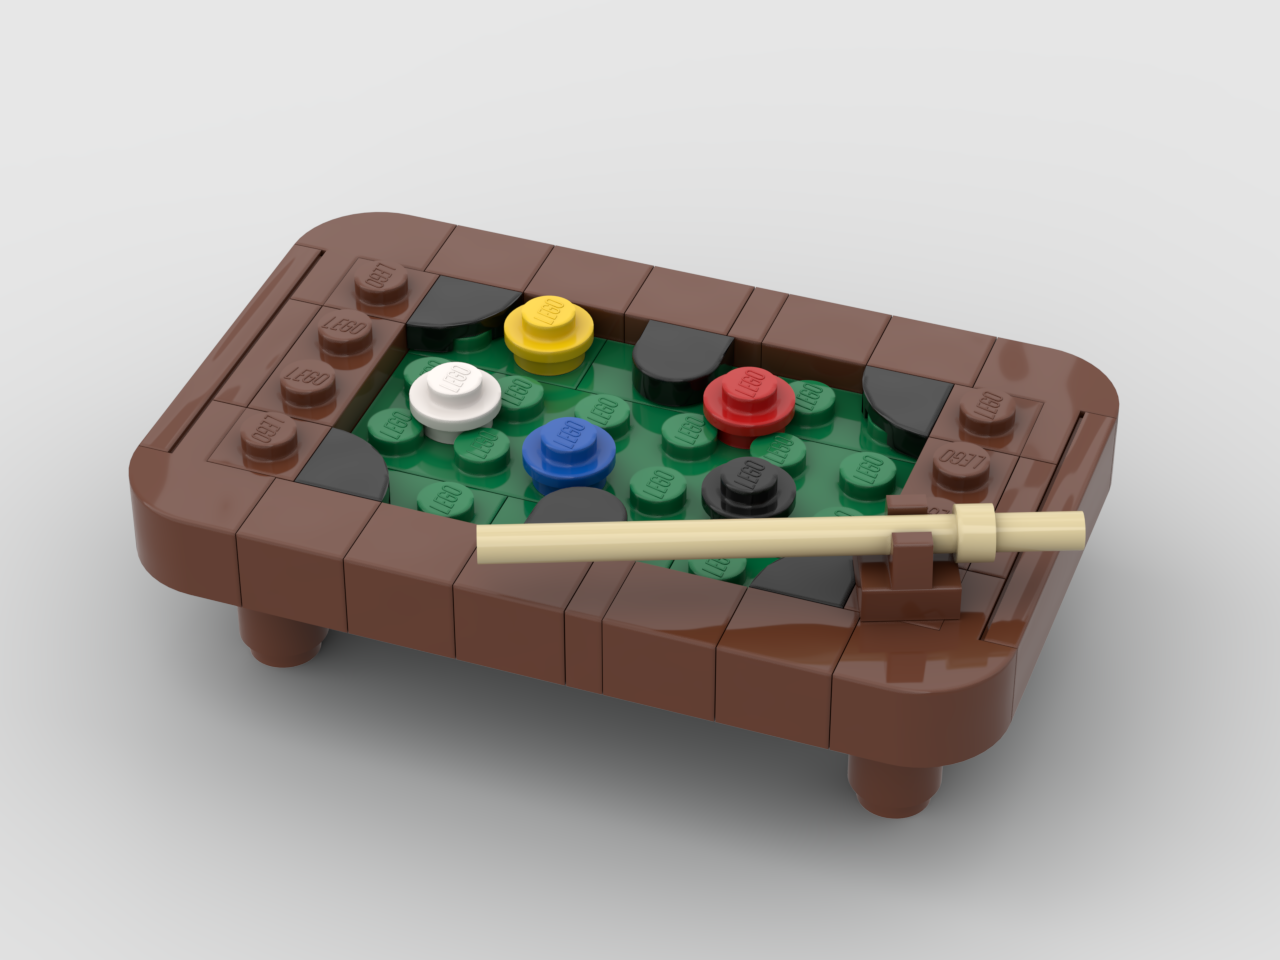 How to build lego pool table